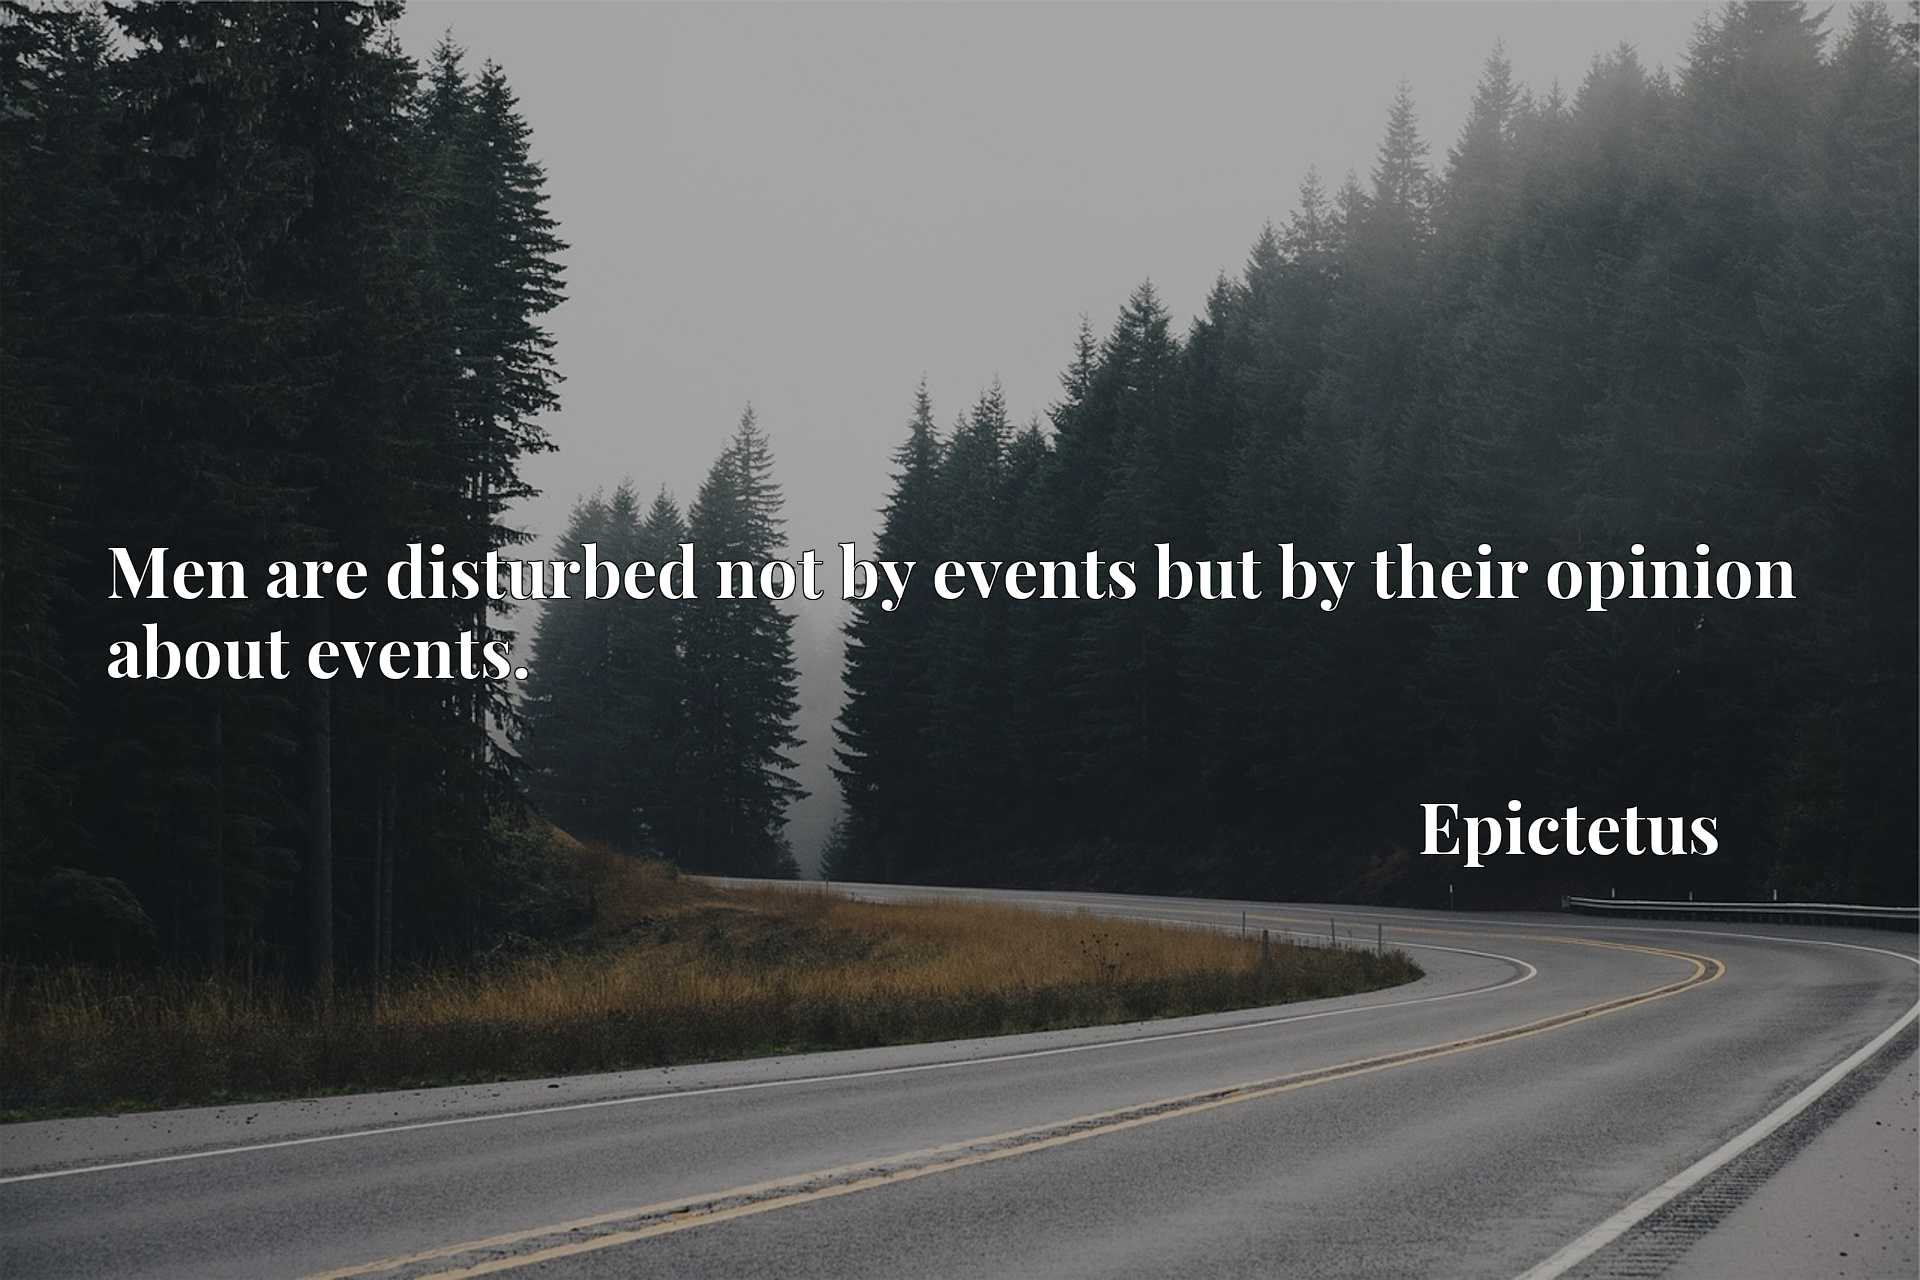 Men are disturbed not by events but by their opinion about events.